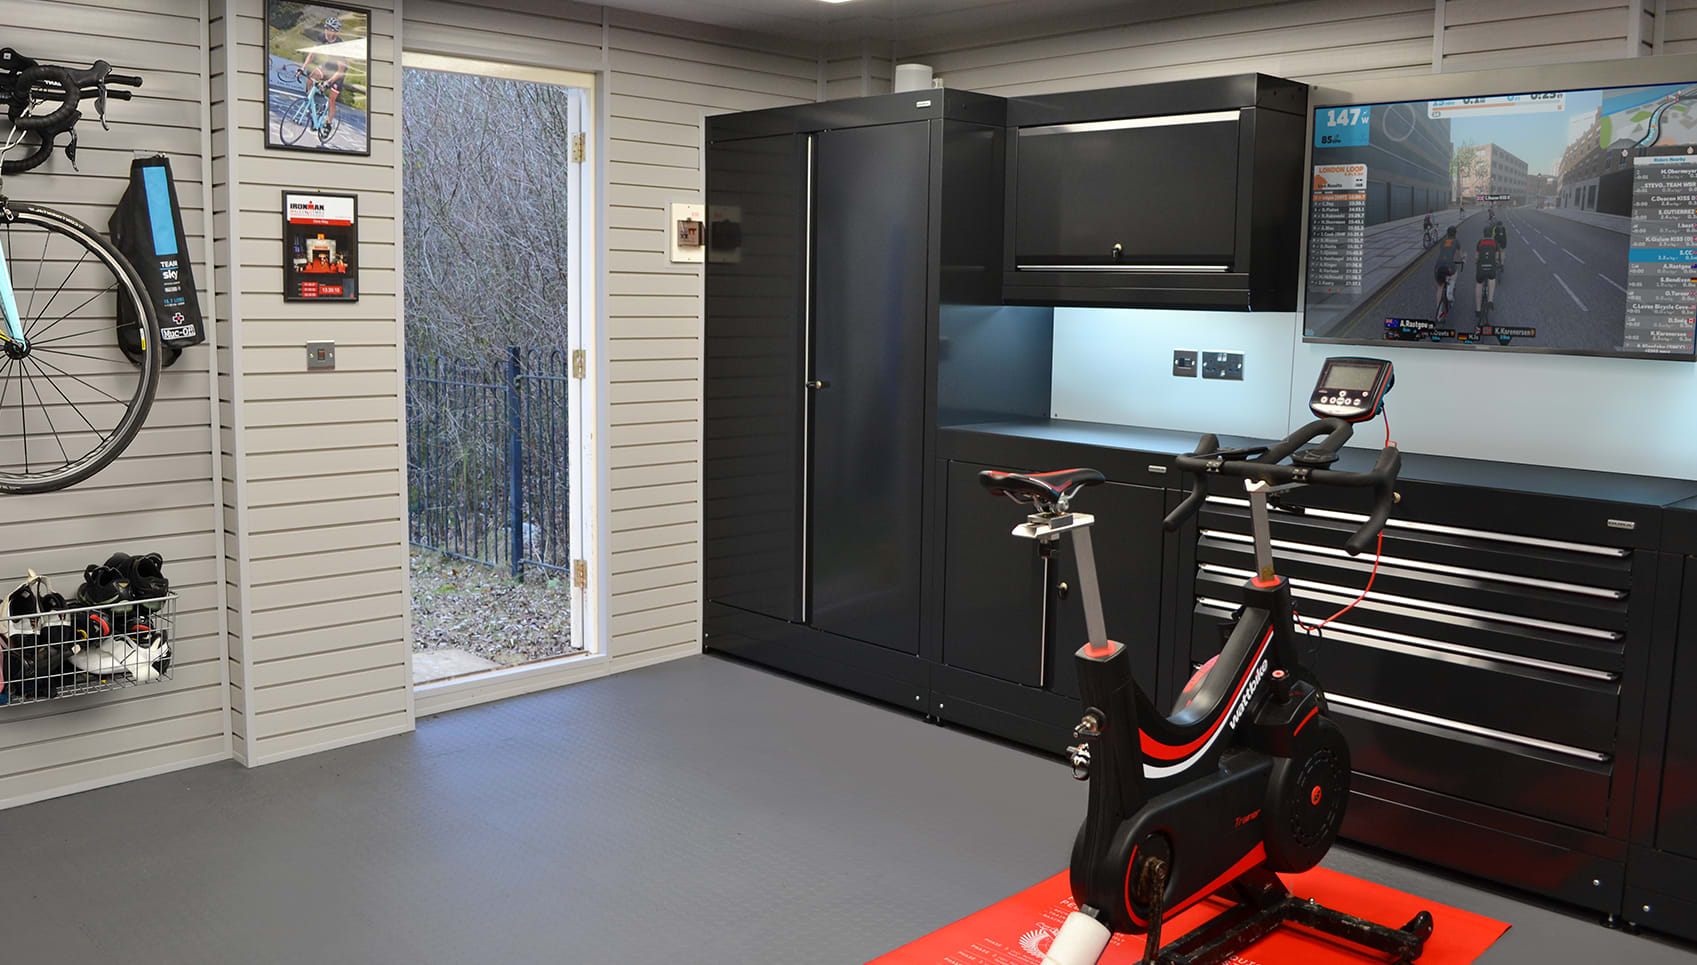 Garage gym s cyclist s garages from garage experts dura garages